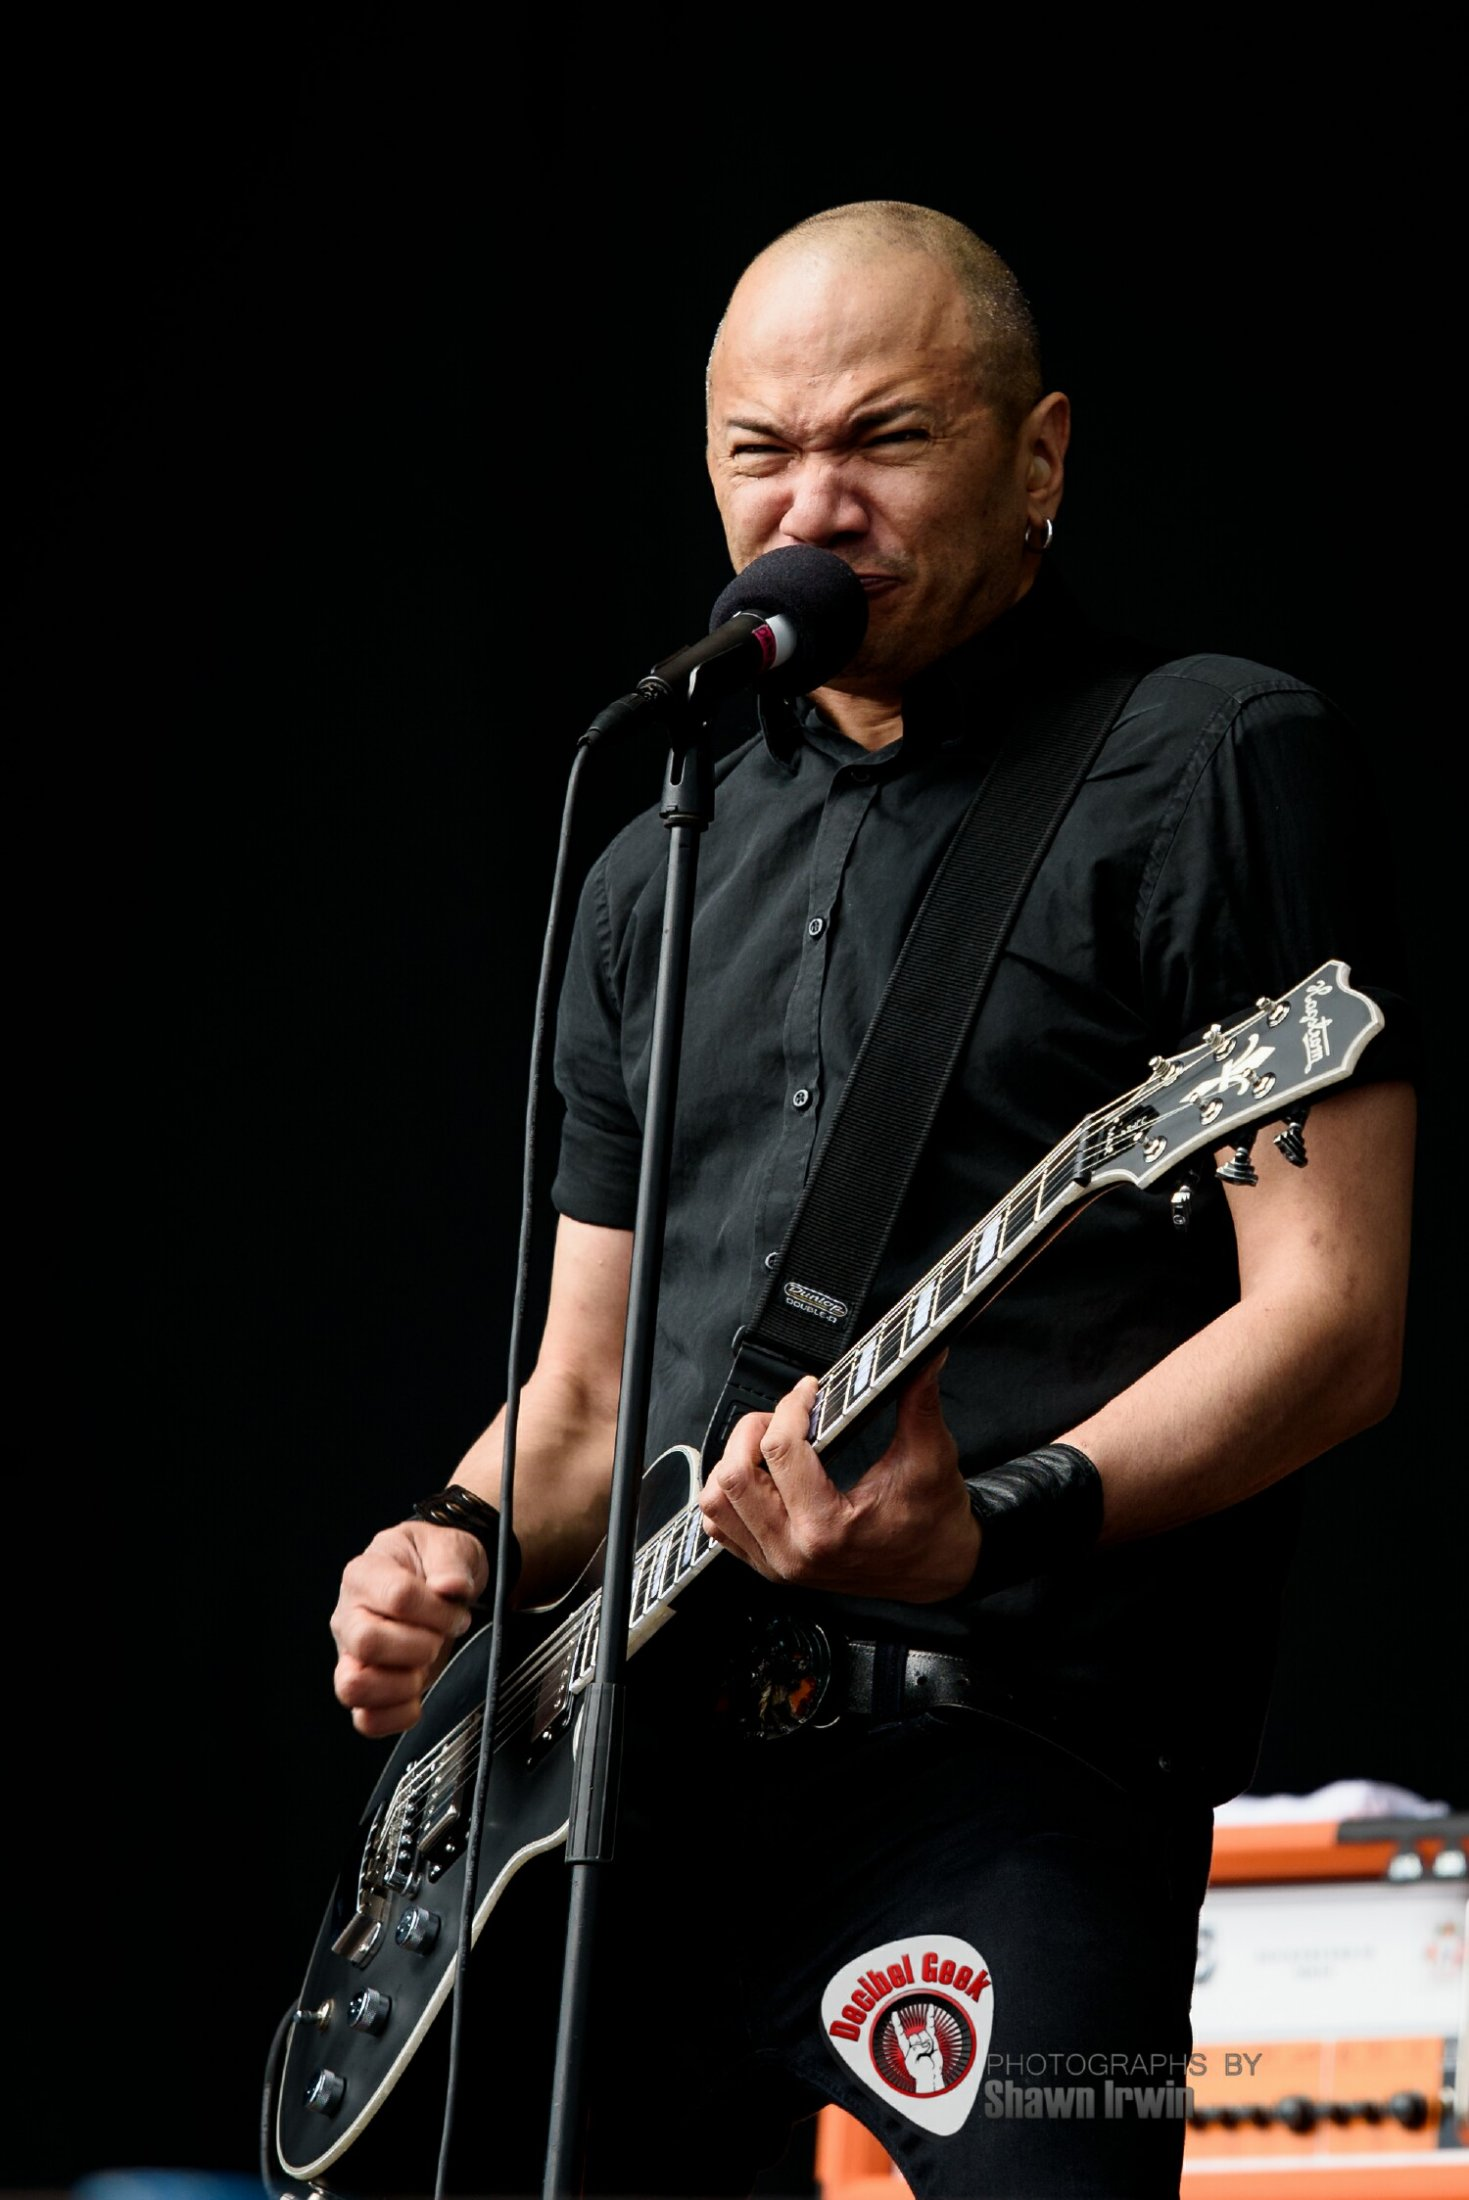 Danko Jones #18-SRF 2019-Shawn Irwin